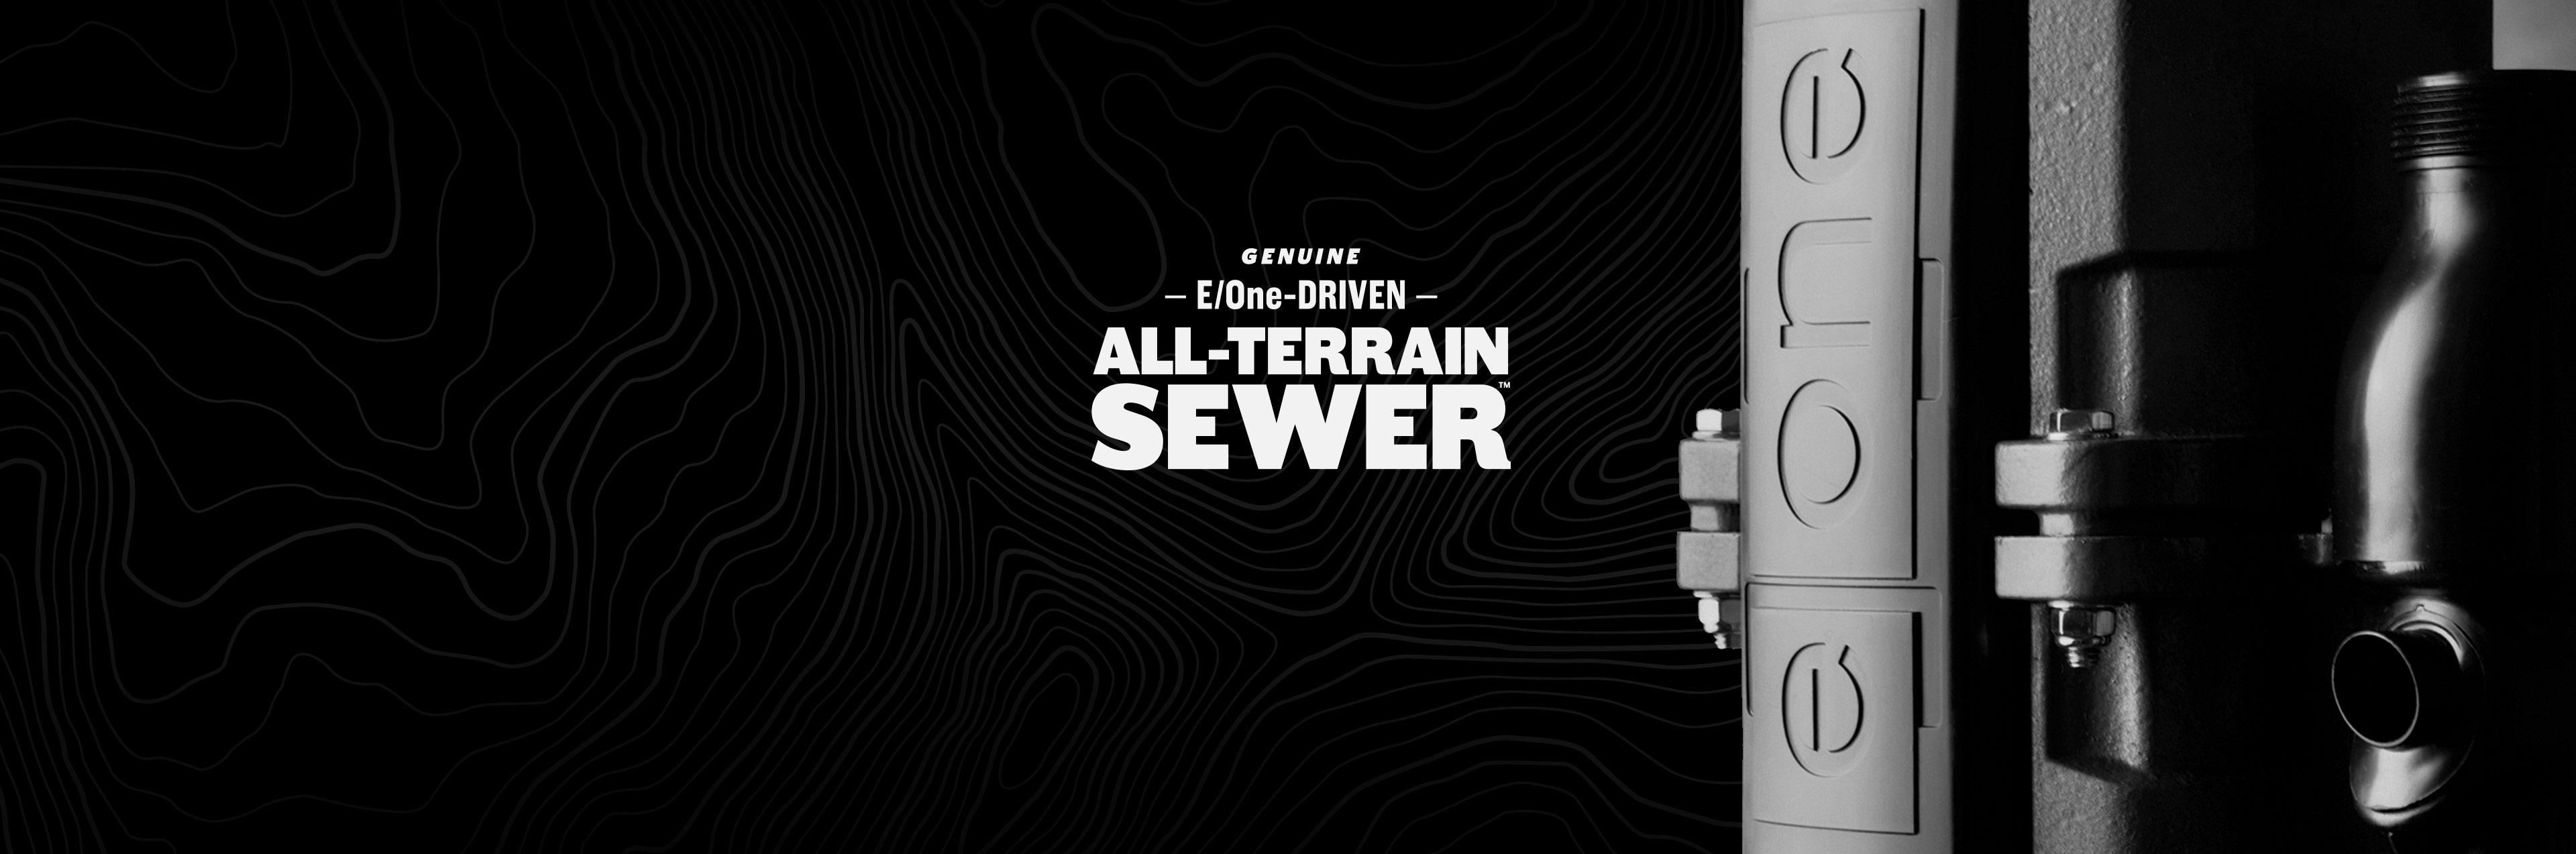 All Terrain Sewer